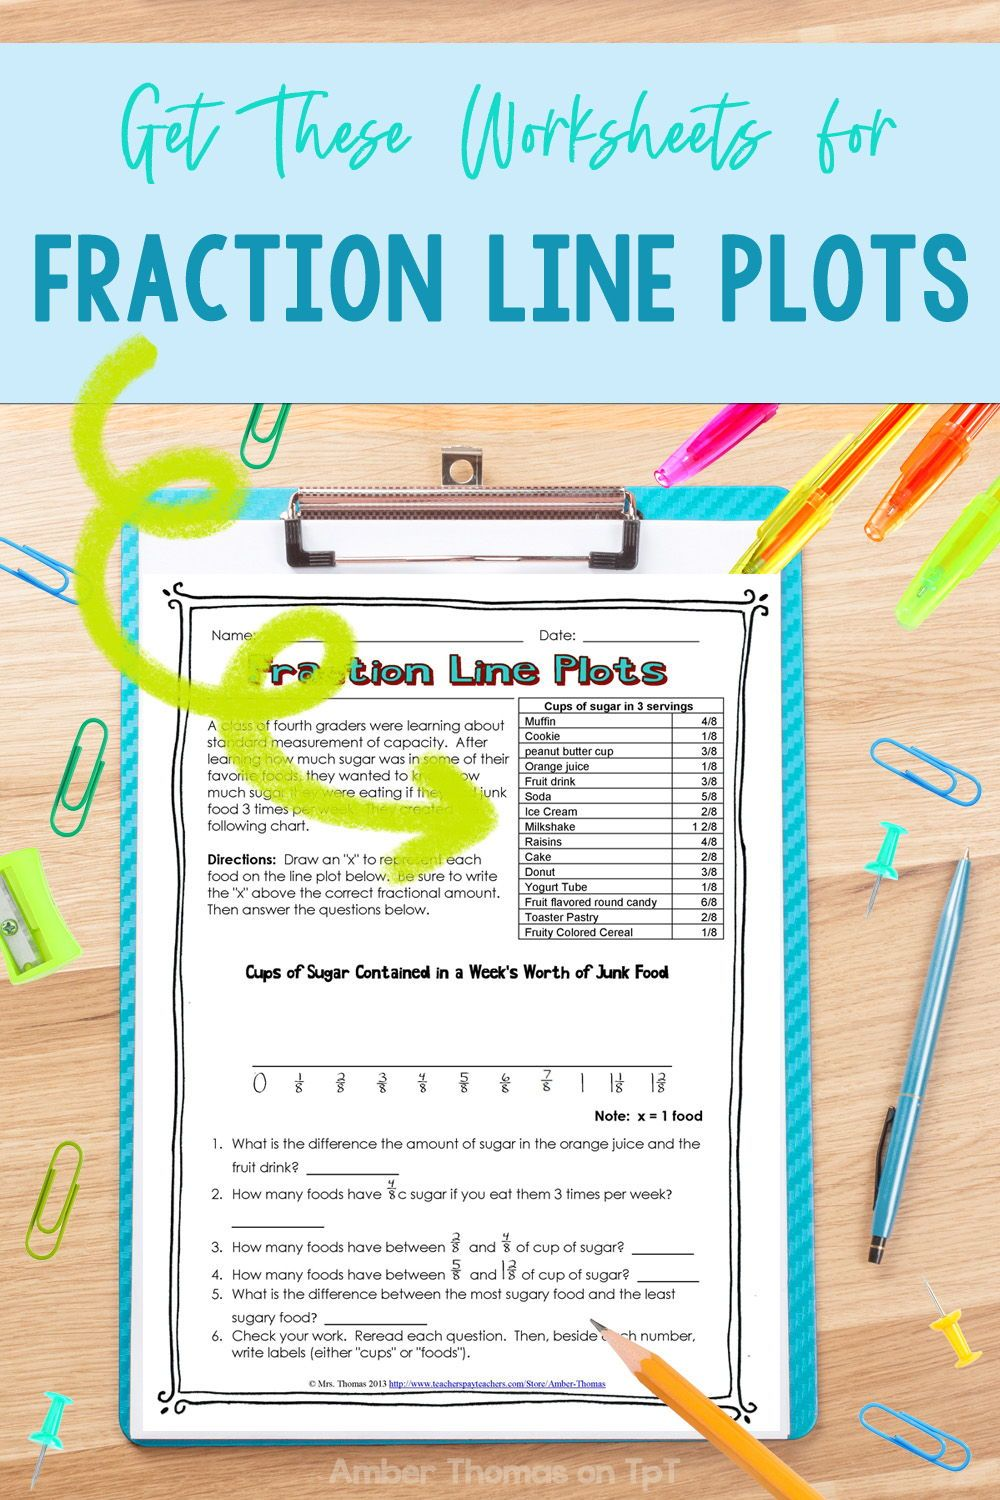 Fraction Line Plot Worksheets   Elementary math lessons [ 1500 x 1000 Pixel ]